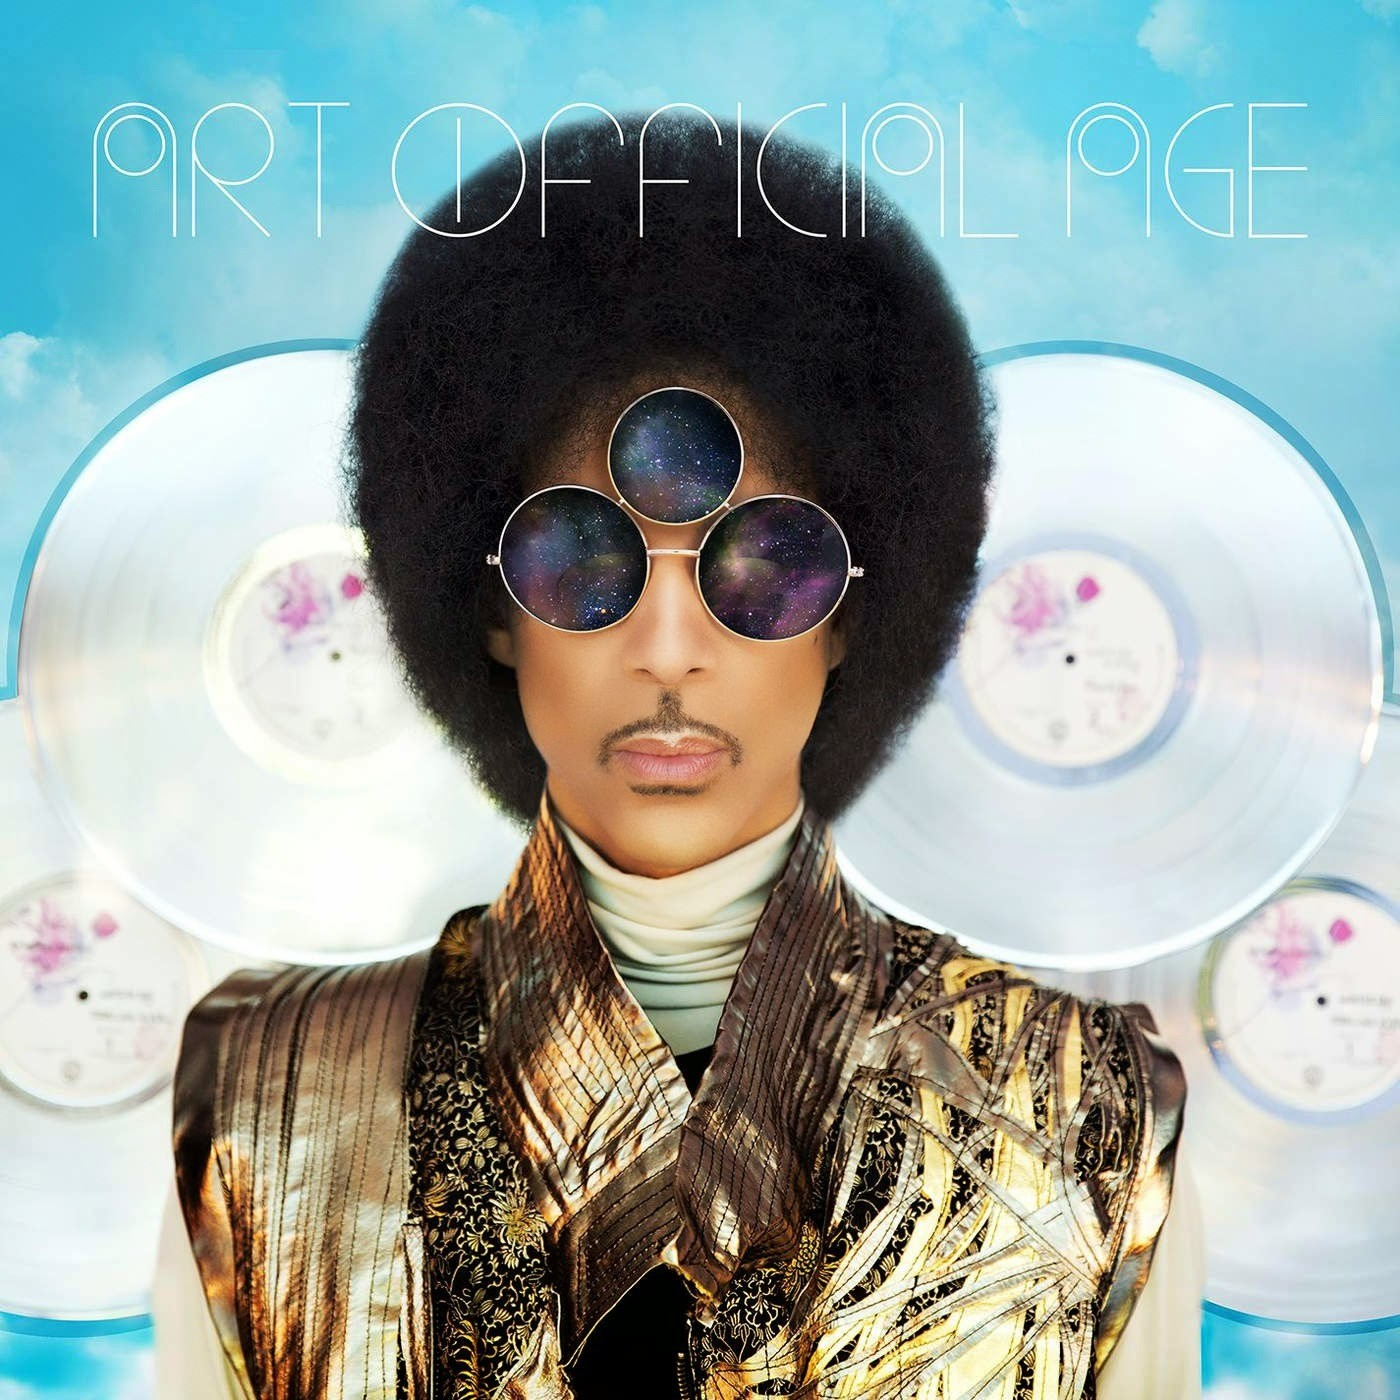 prince-art-official-age-album-cover